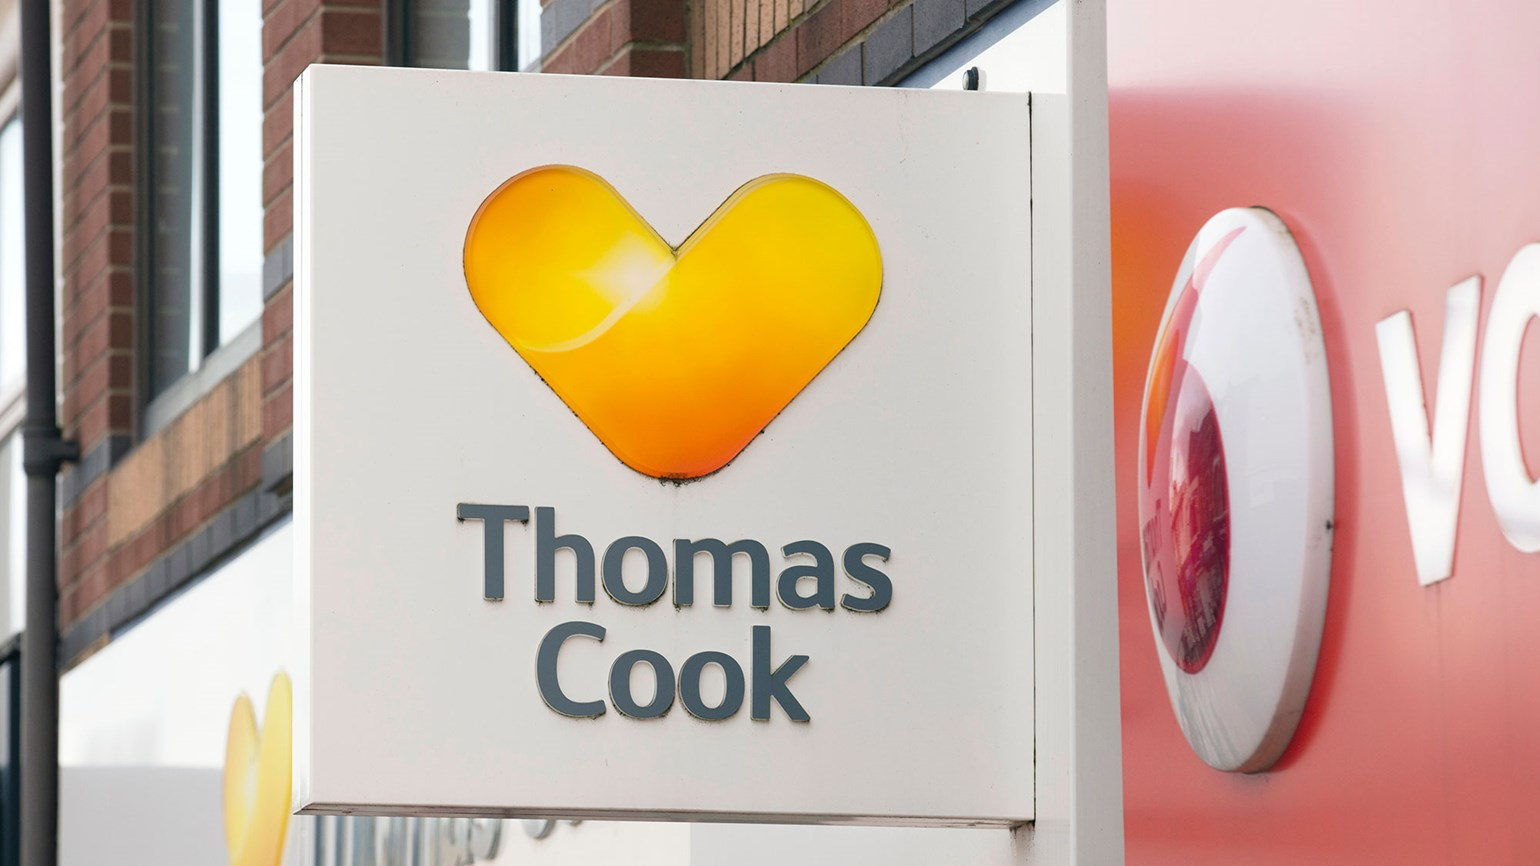 U.K. agencies look to snap up Thomas Cook advisors, storefronts